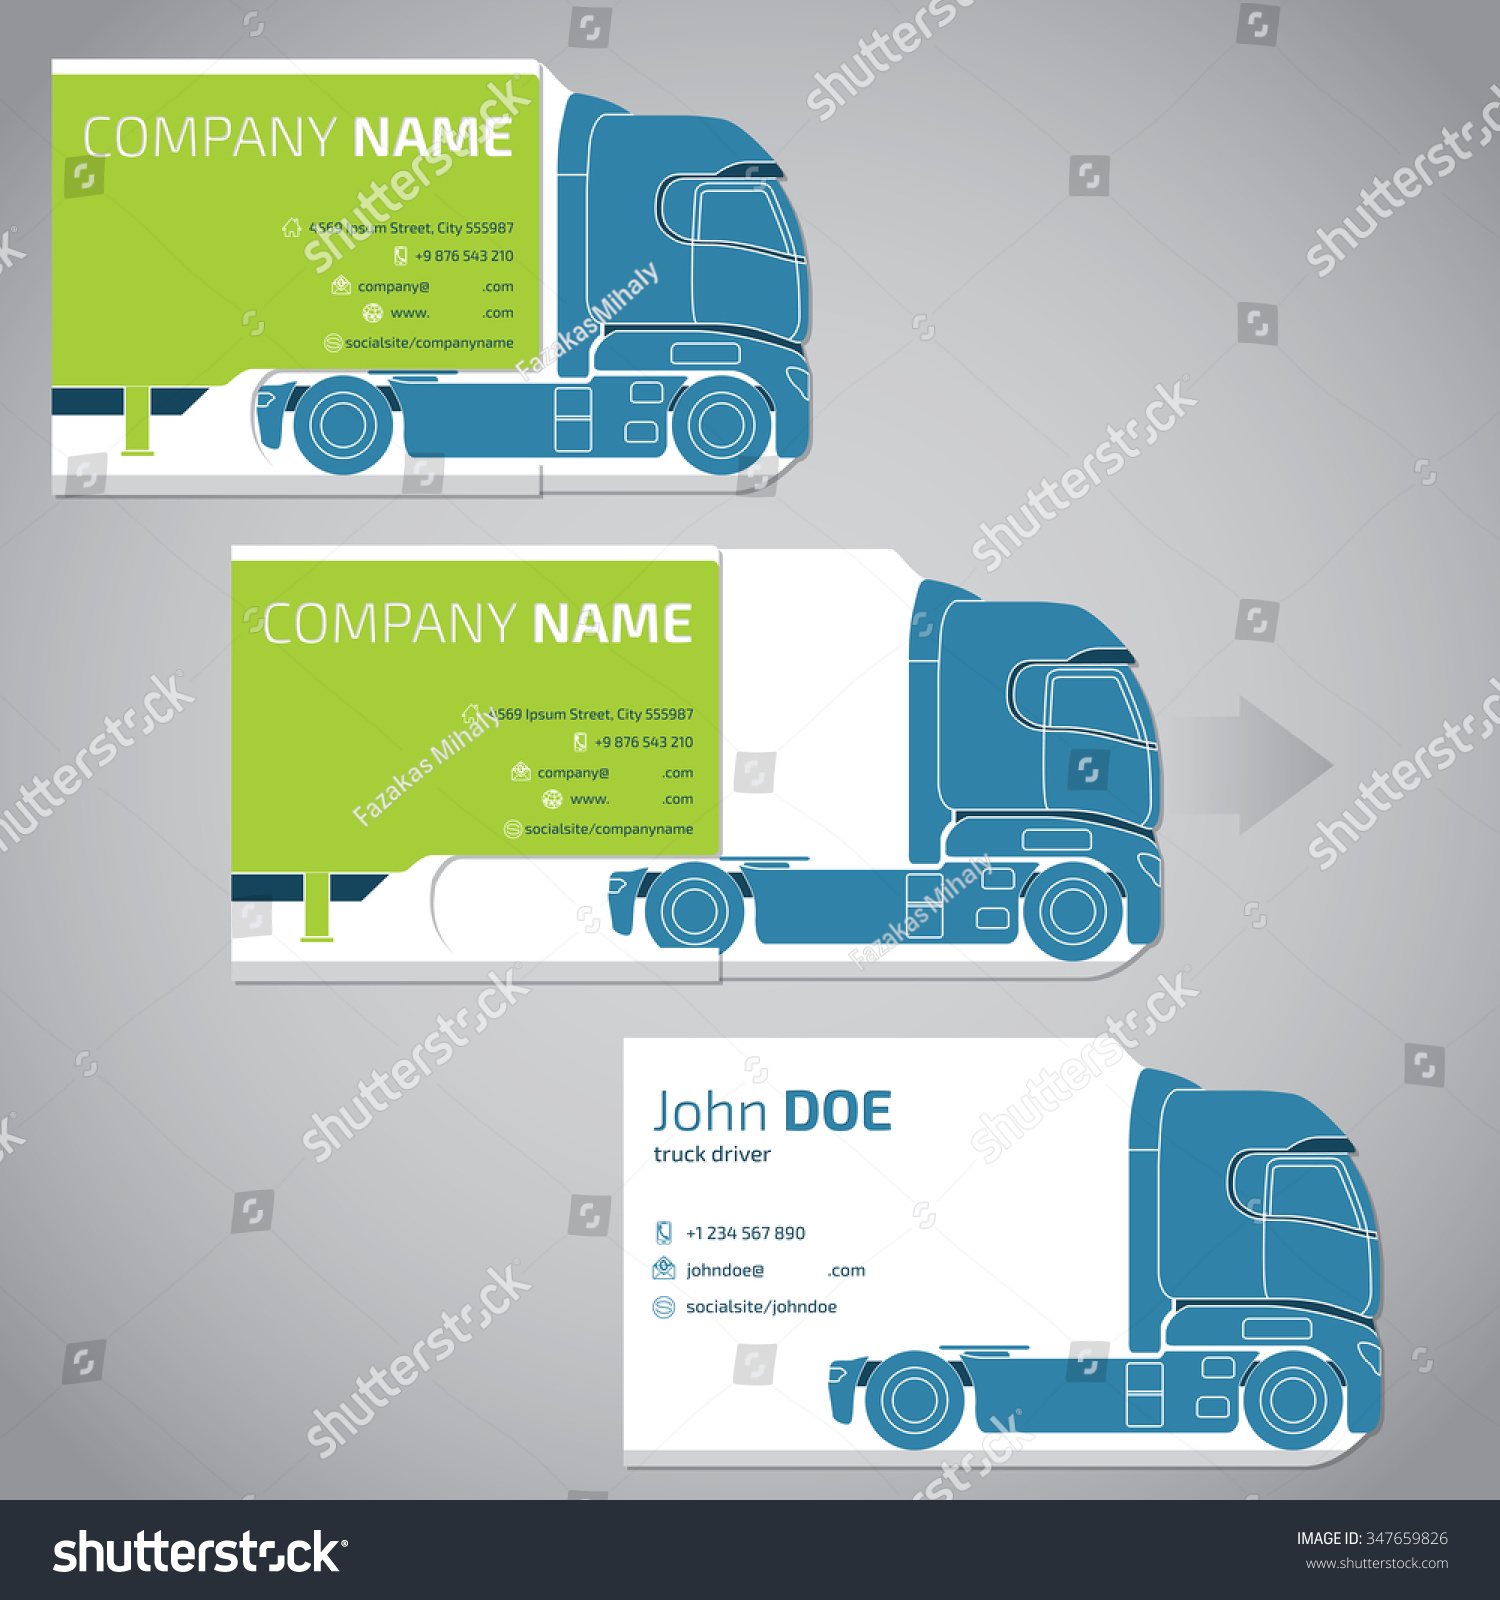 Two Piece Business Card Template Design Stock Vector - Business card template design